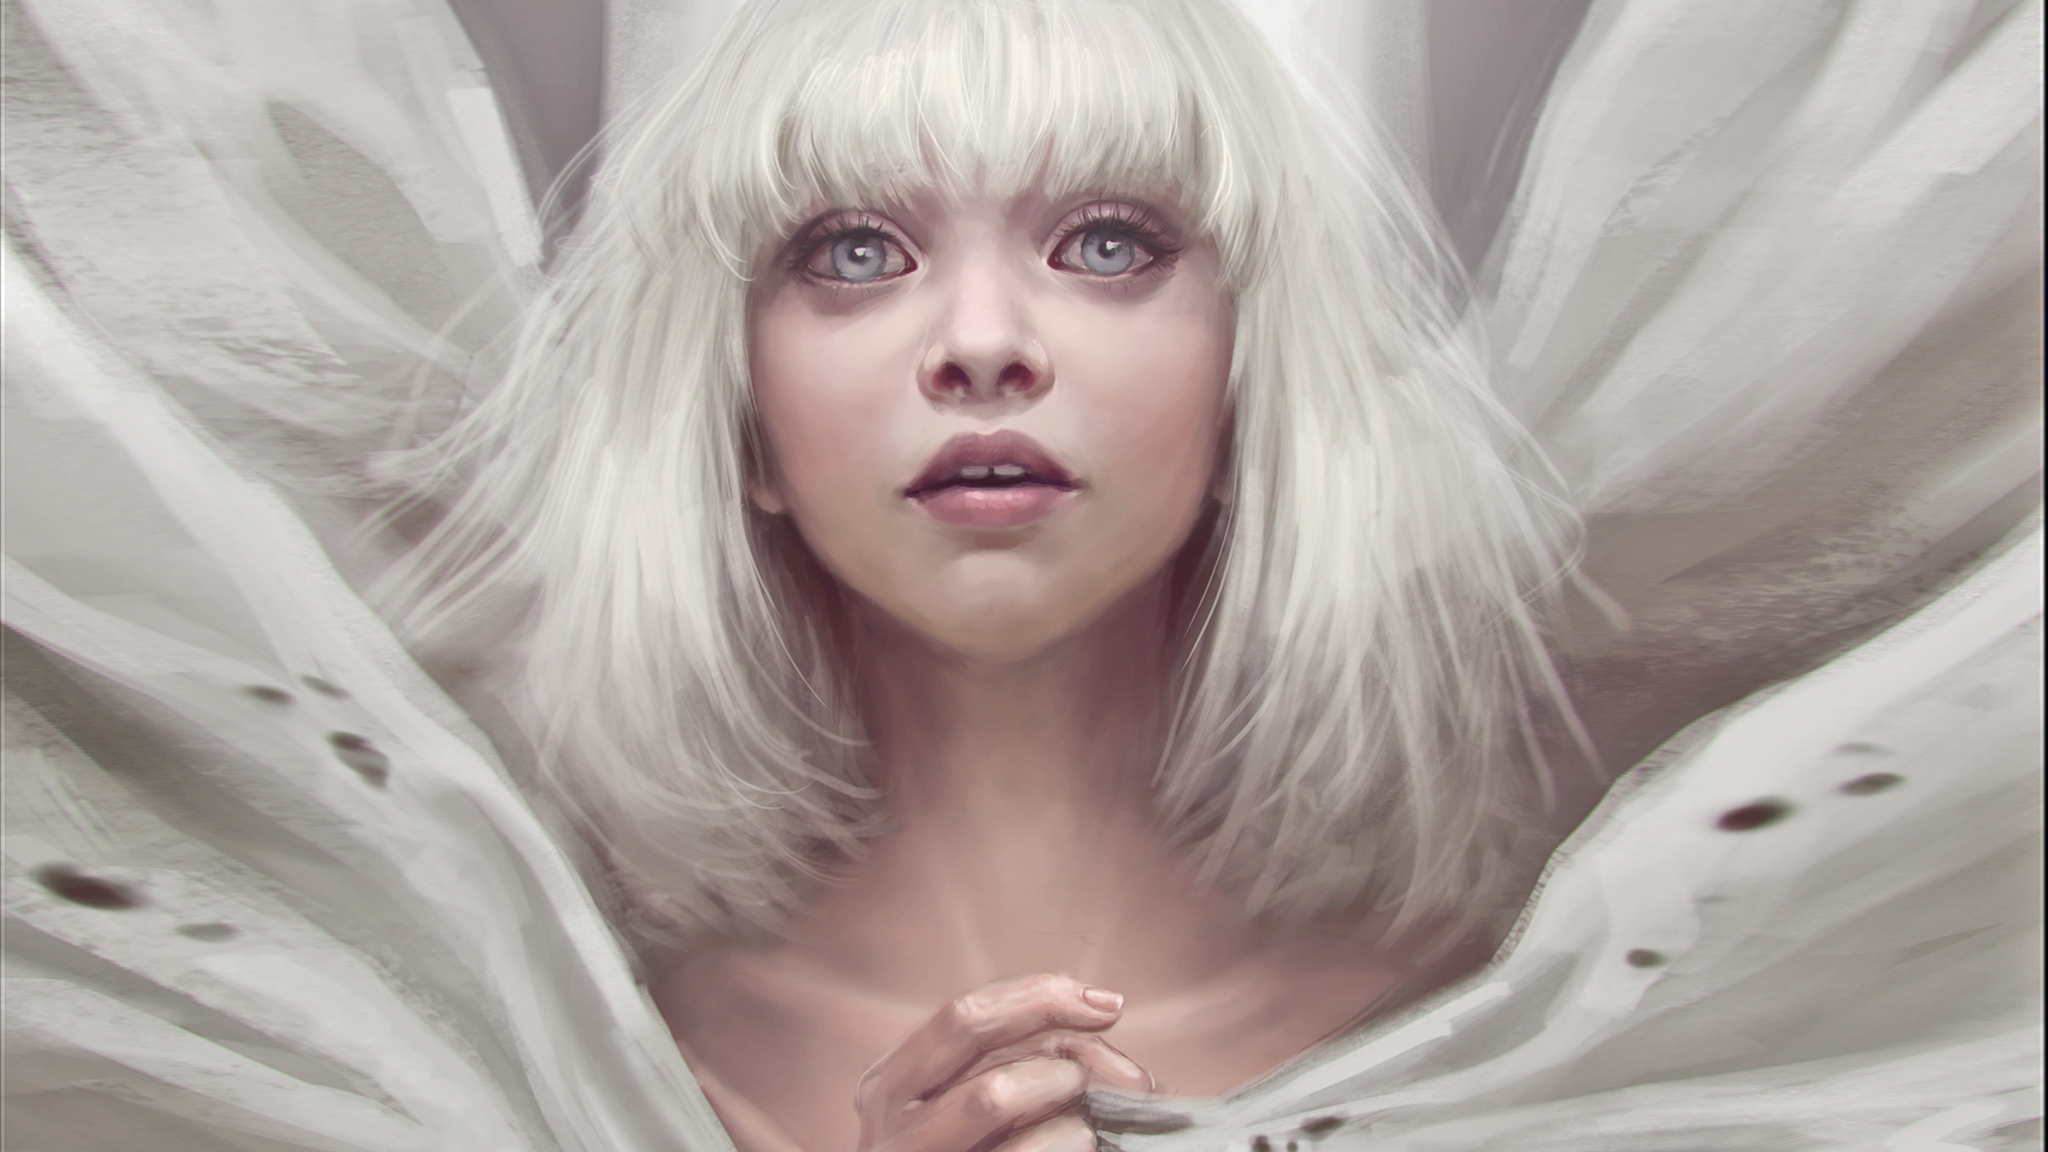 2048x1152 sia artwork 2048x1152 resolution hd 4k for Sia download